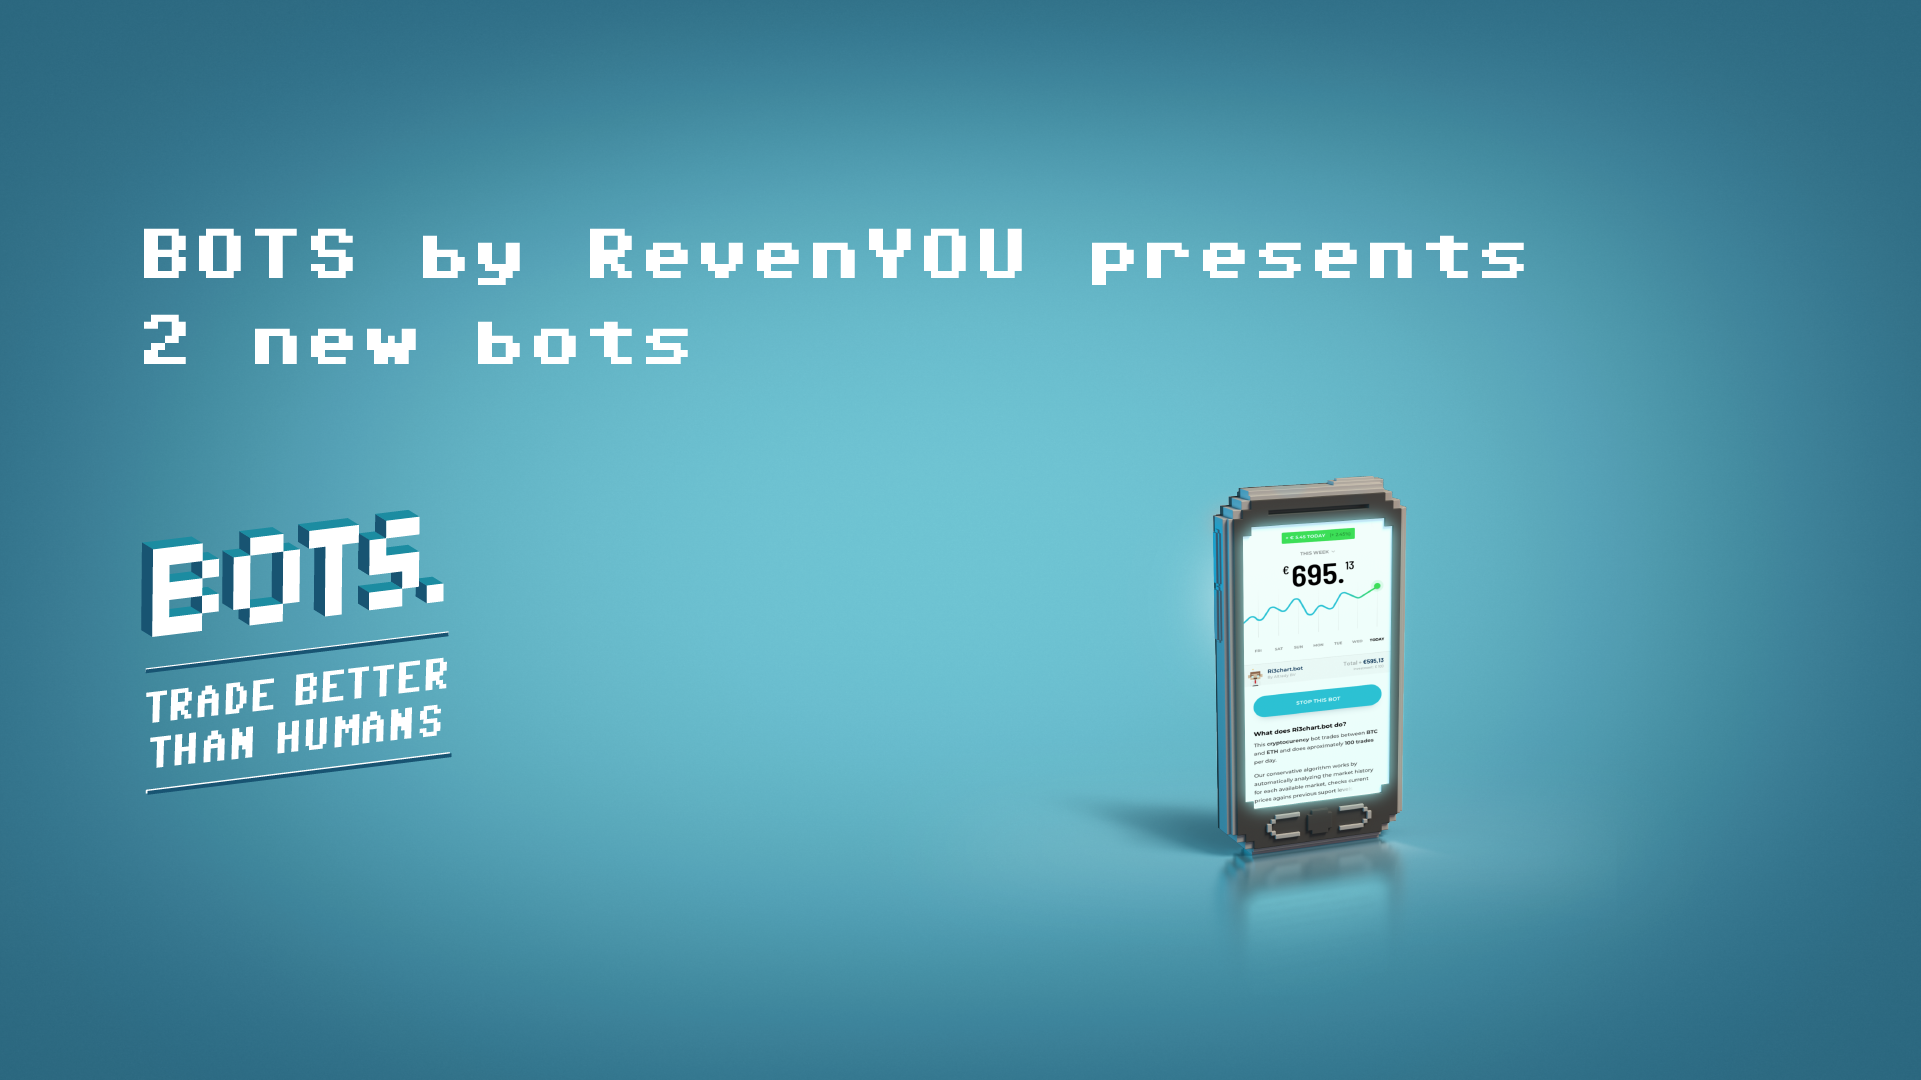 BOTS by RevenYOU present 2 new BOTS